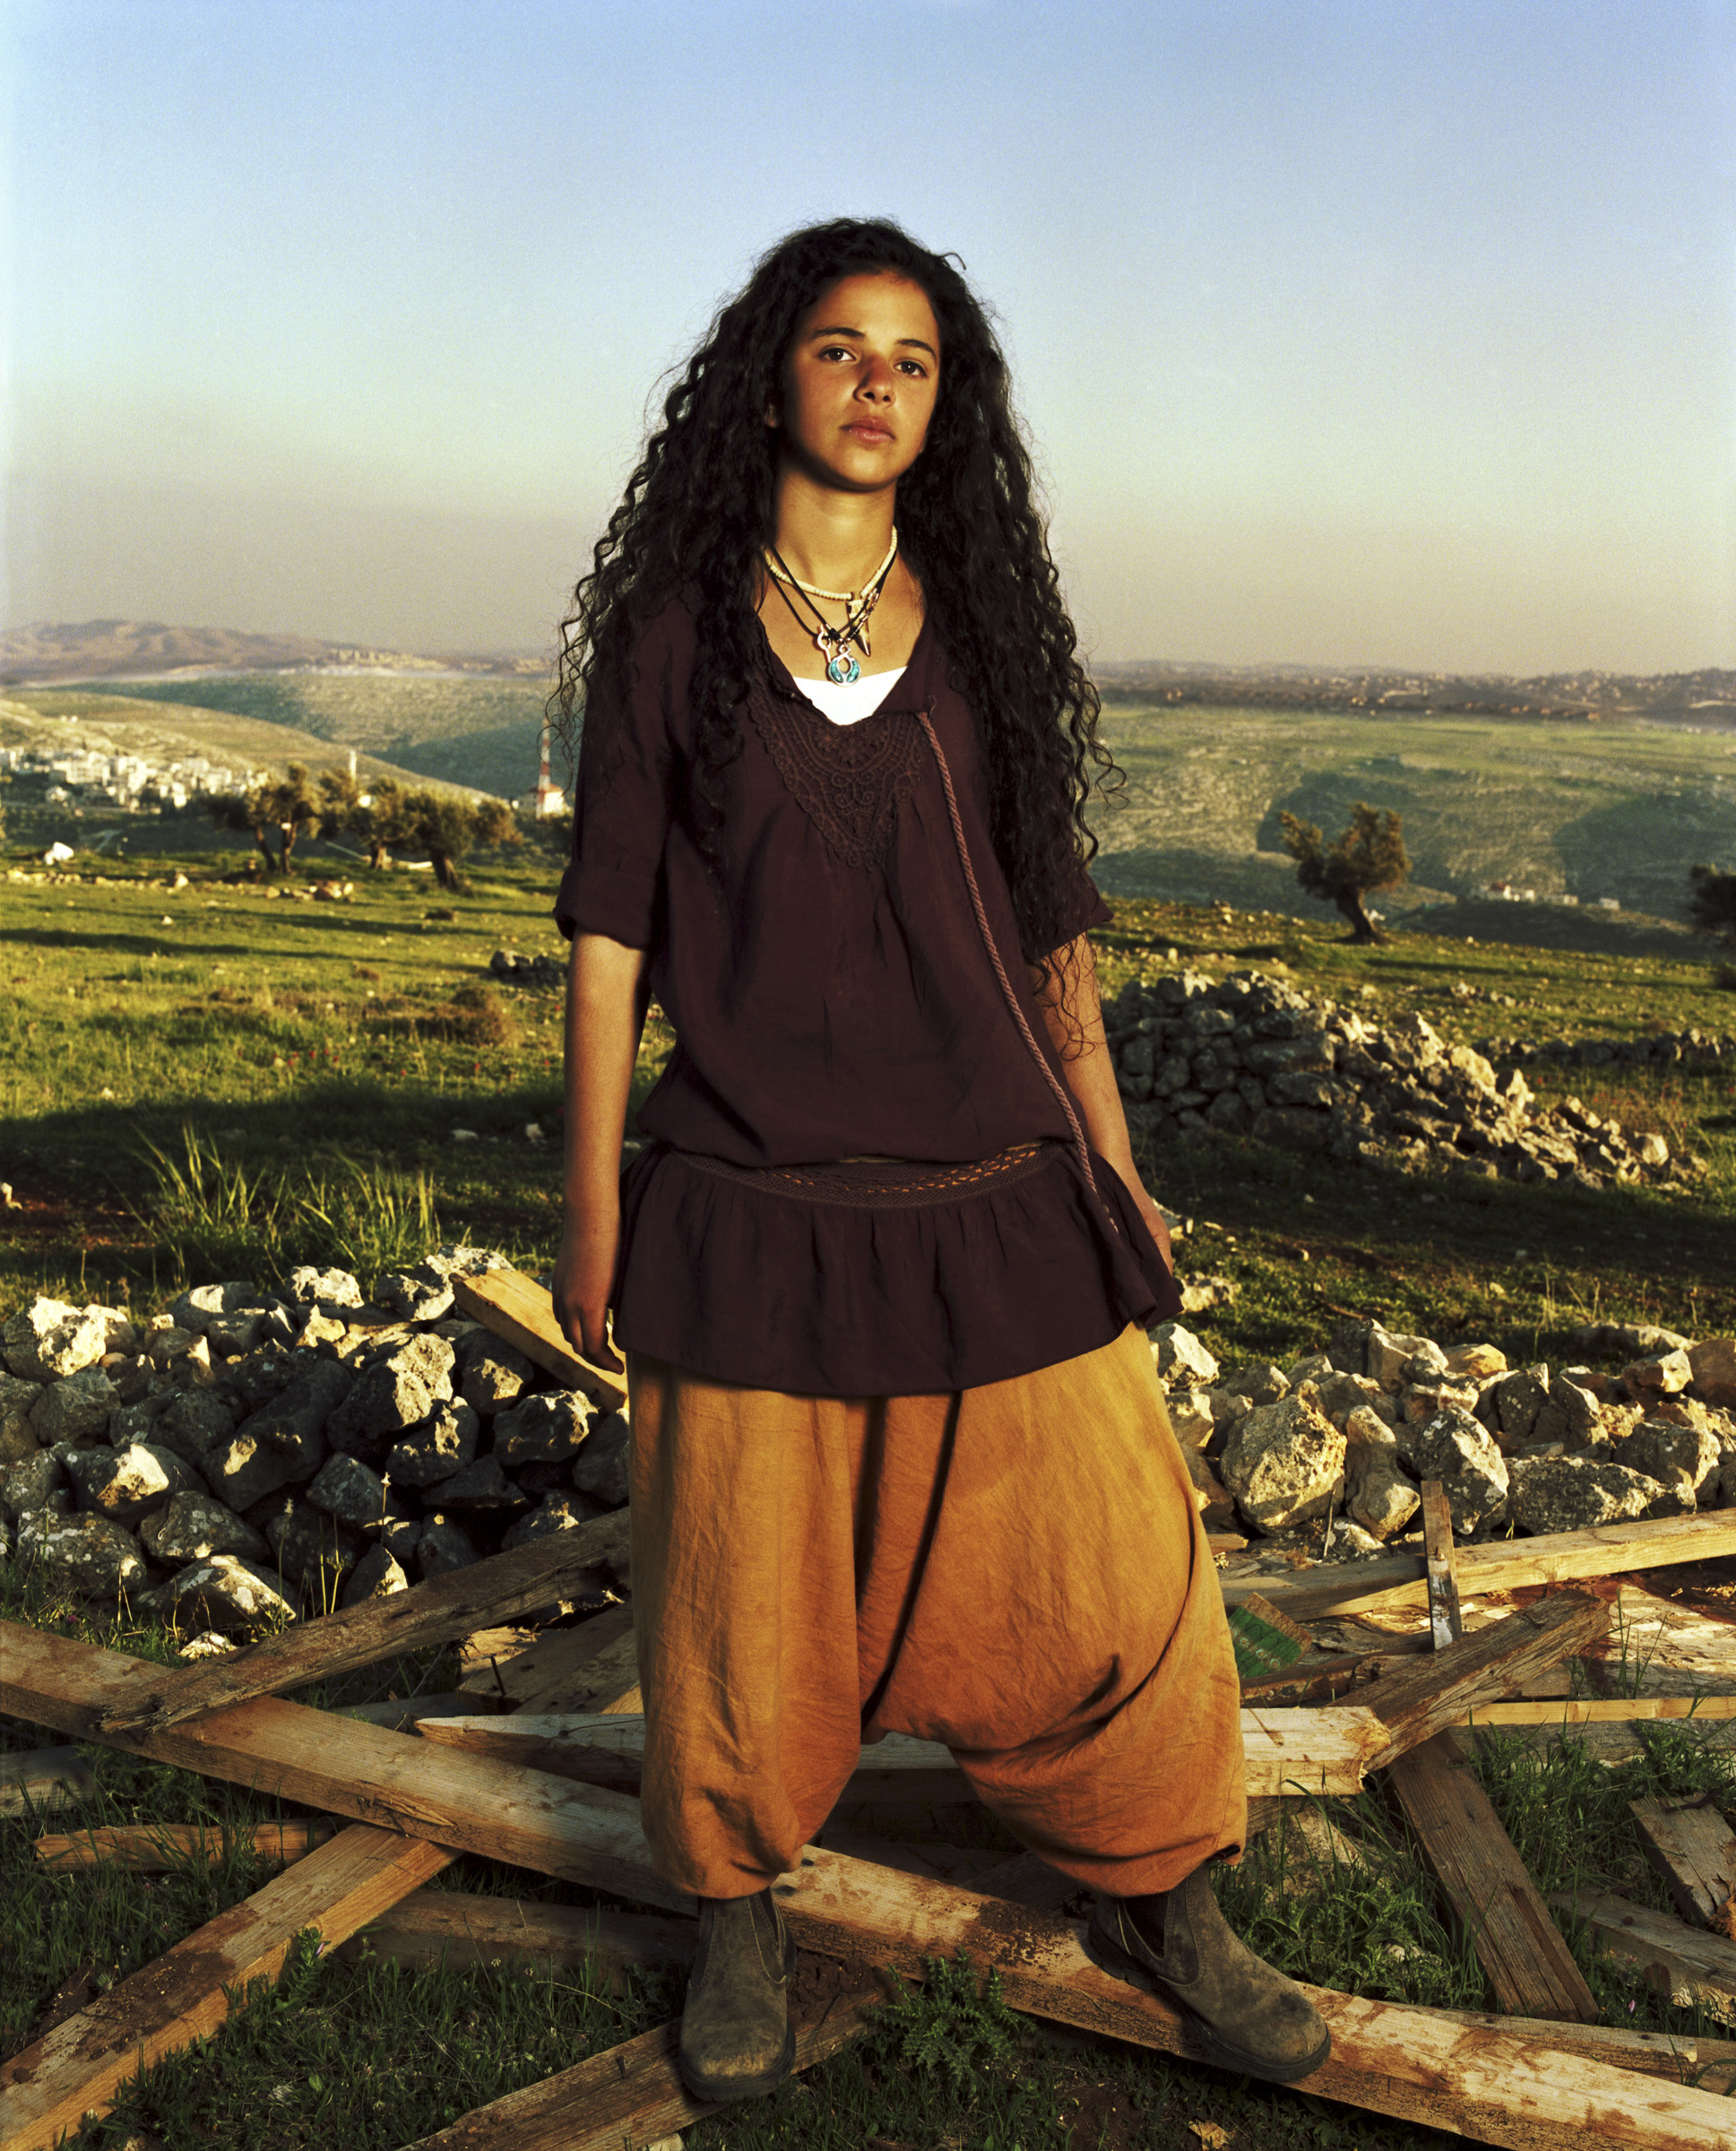 Bat El, 2011   Bat El lives alone on a hilltop outpost in the West Bank after being kicked out of Ben Zimra's school. She stands on the wood of her house the army just knocked down because it is considered illegal building.